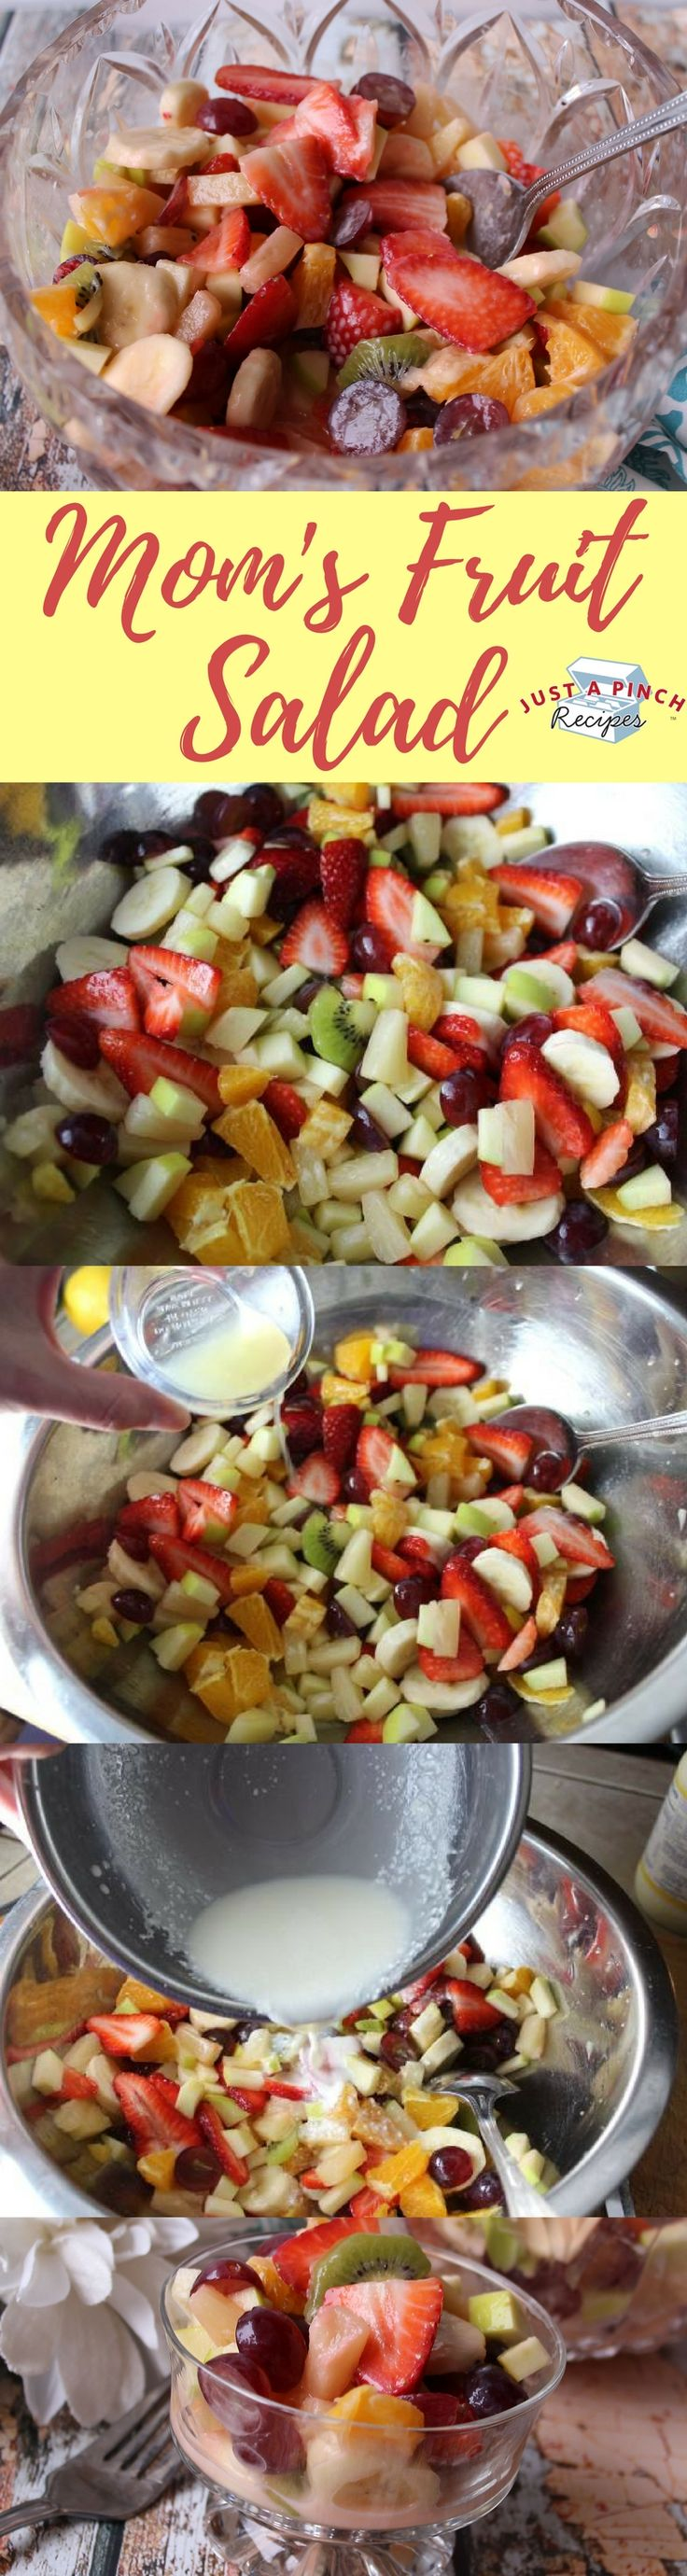 This is a really simple fruit salad spotlighting more citrusy flavors. The sauce is really thin and the perfect balance of sweetness with a touch of savoriness.